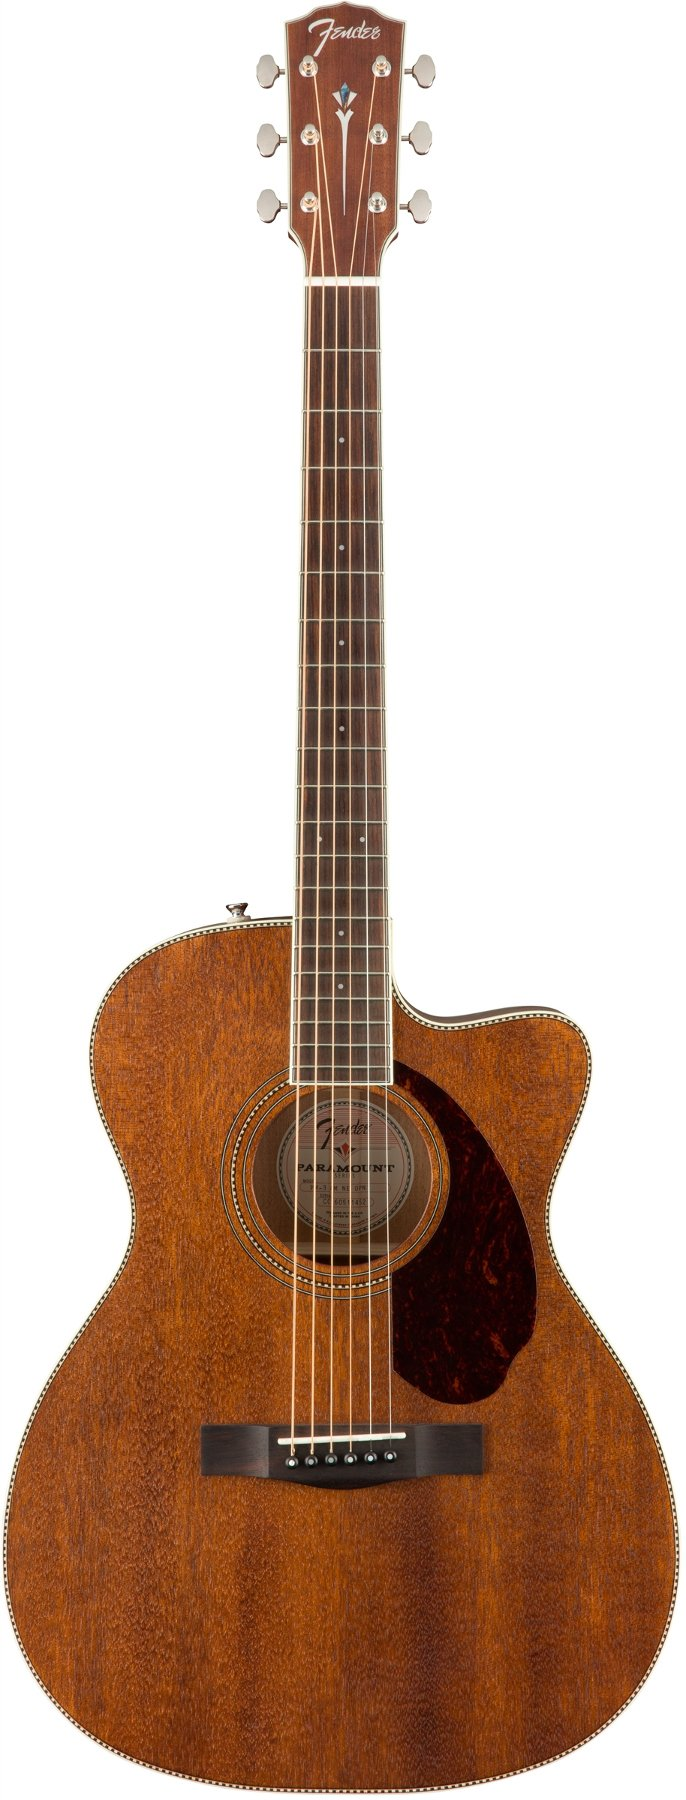 Paramount Series Acoustic Guitar with Deluxe Black Hardshell Case